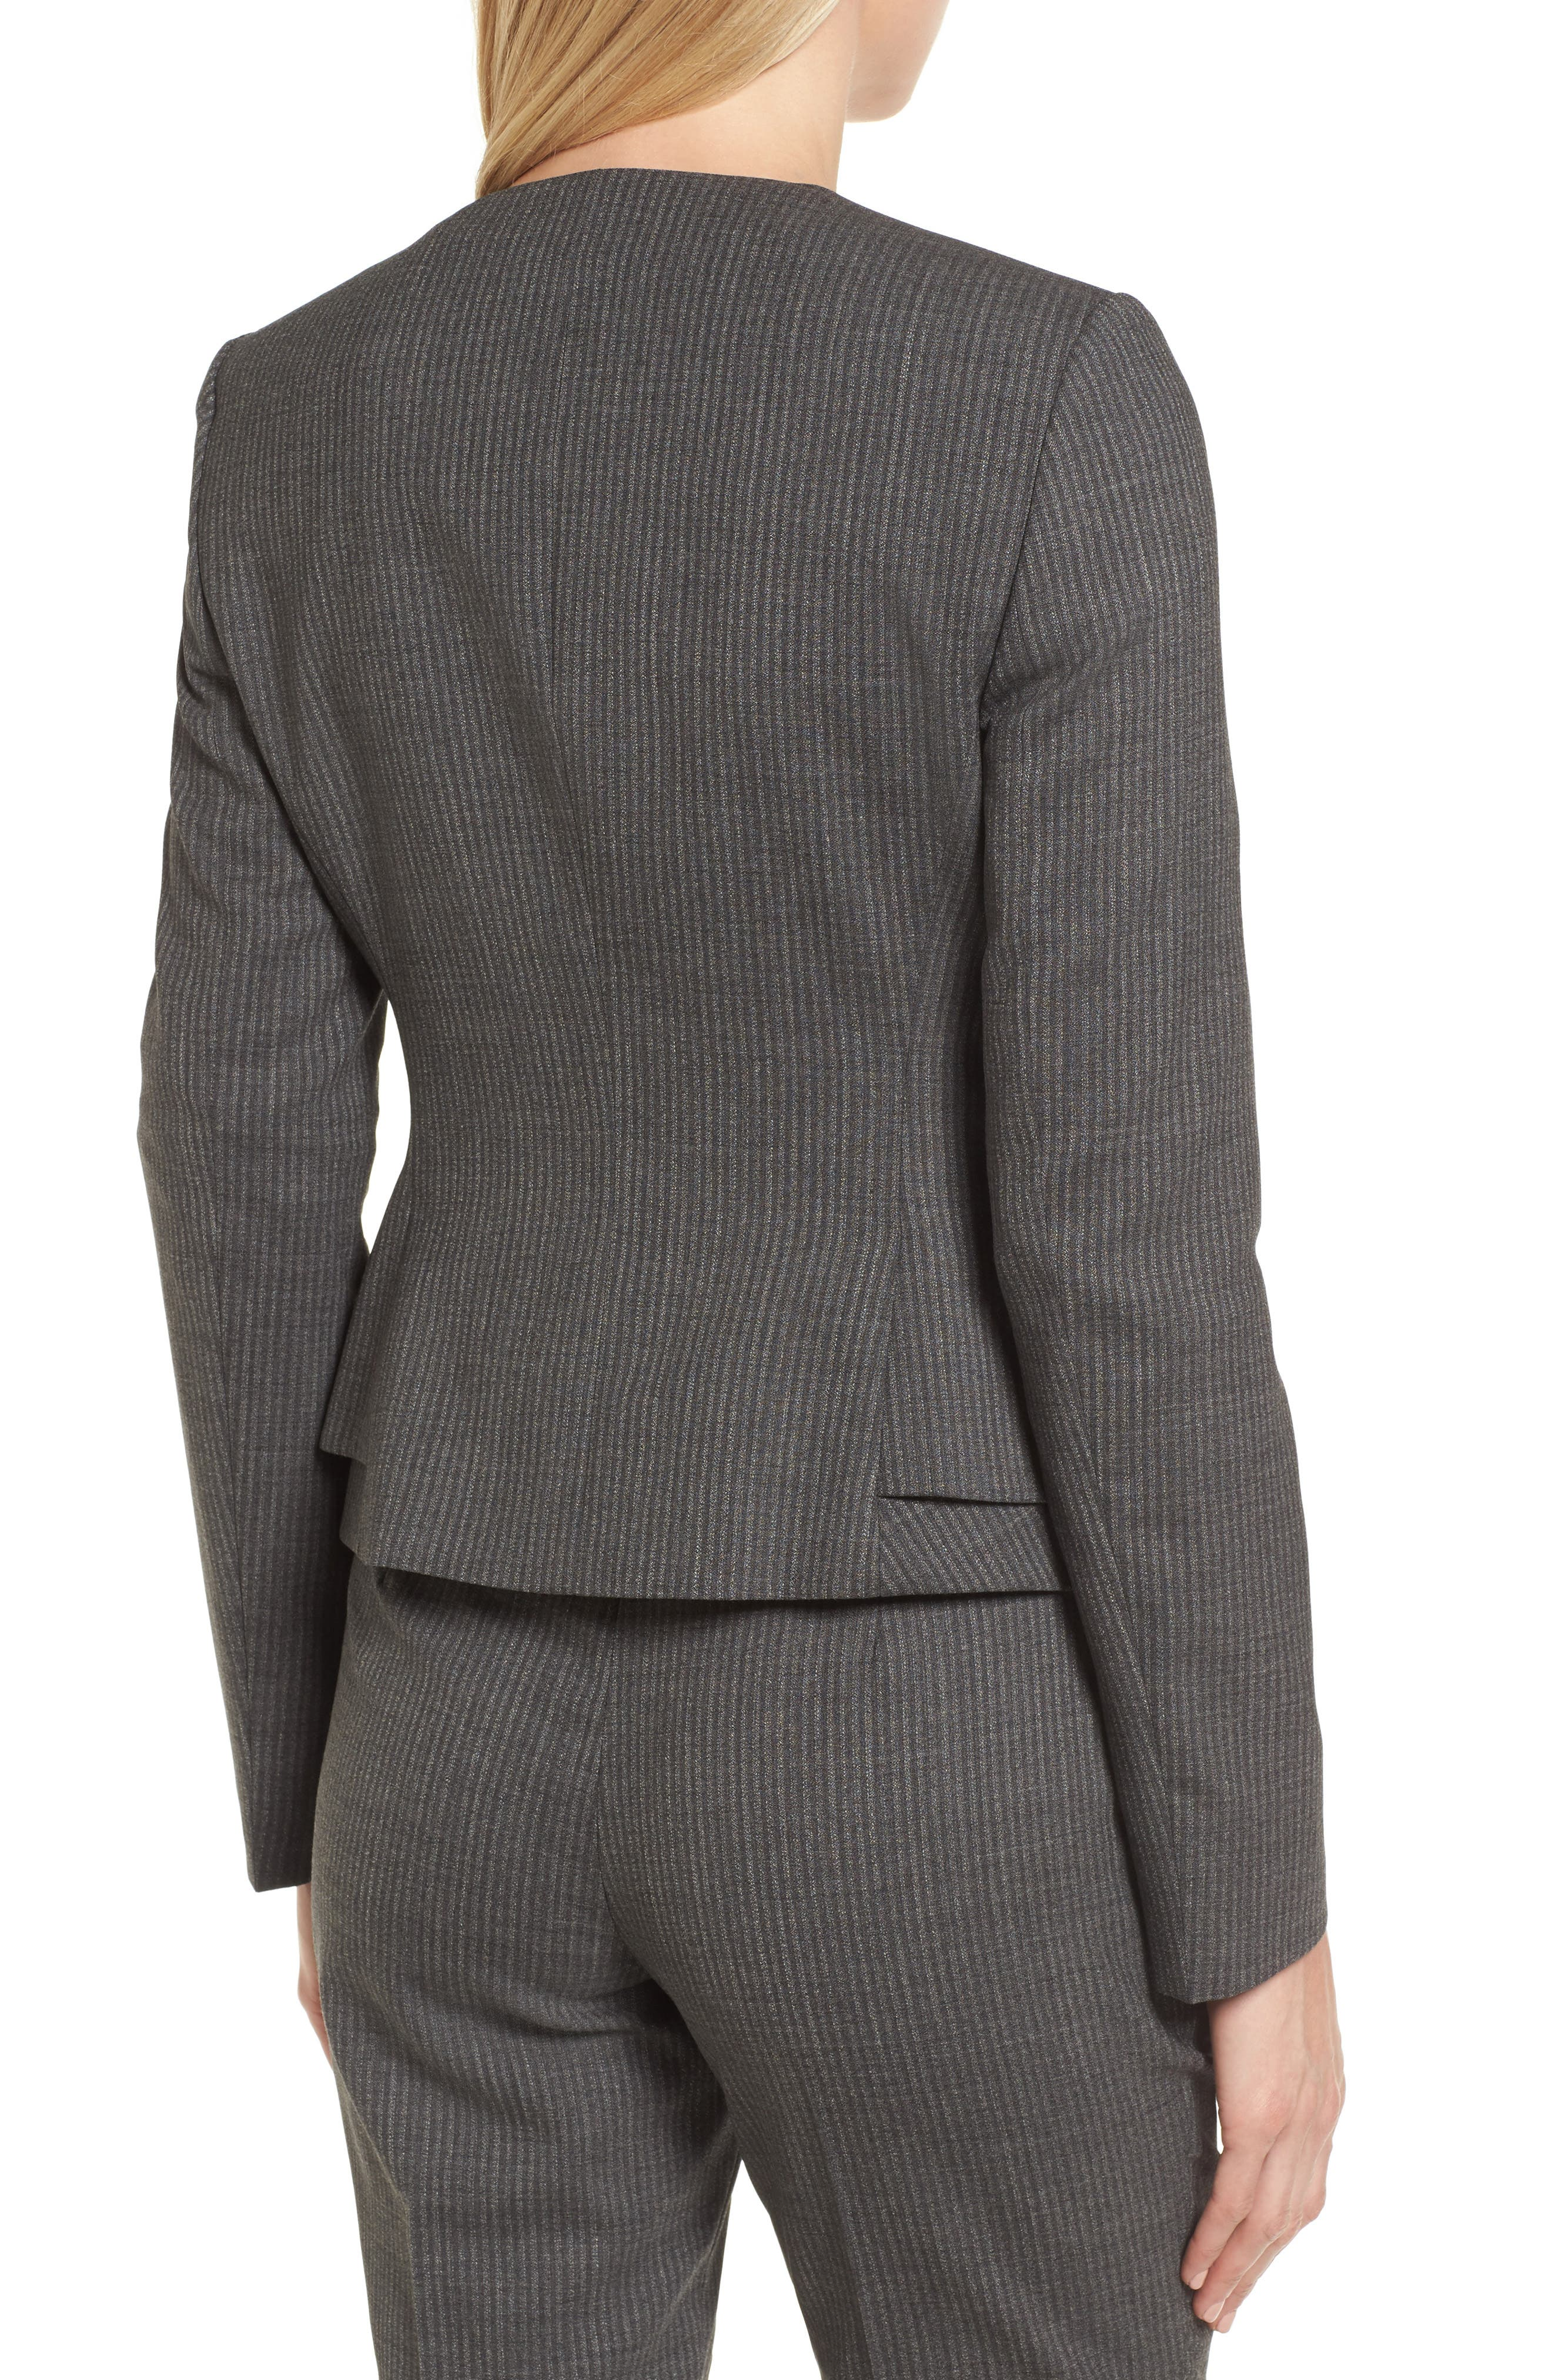 Jasyma Stripe Wool Suit Jacket,                             Alternate thumbnail 2, color,                             070